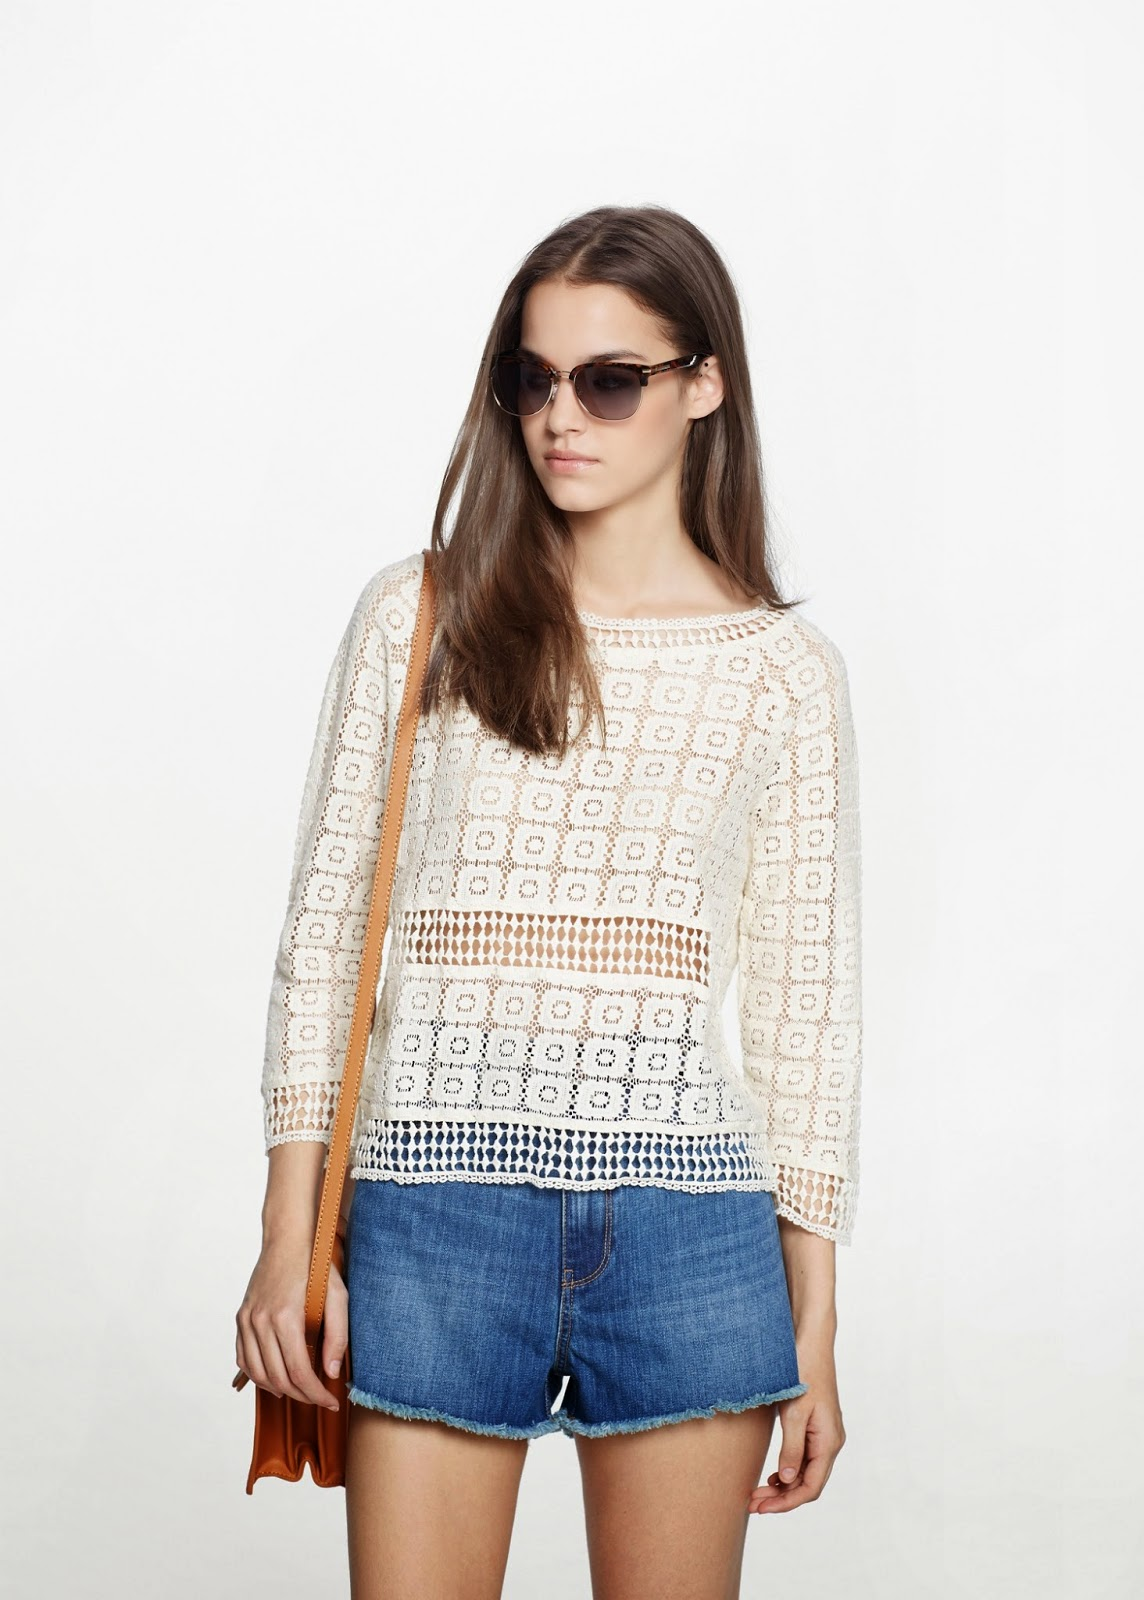 mango white crochet top